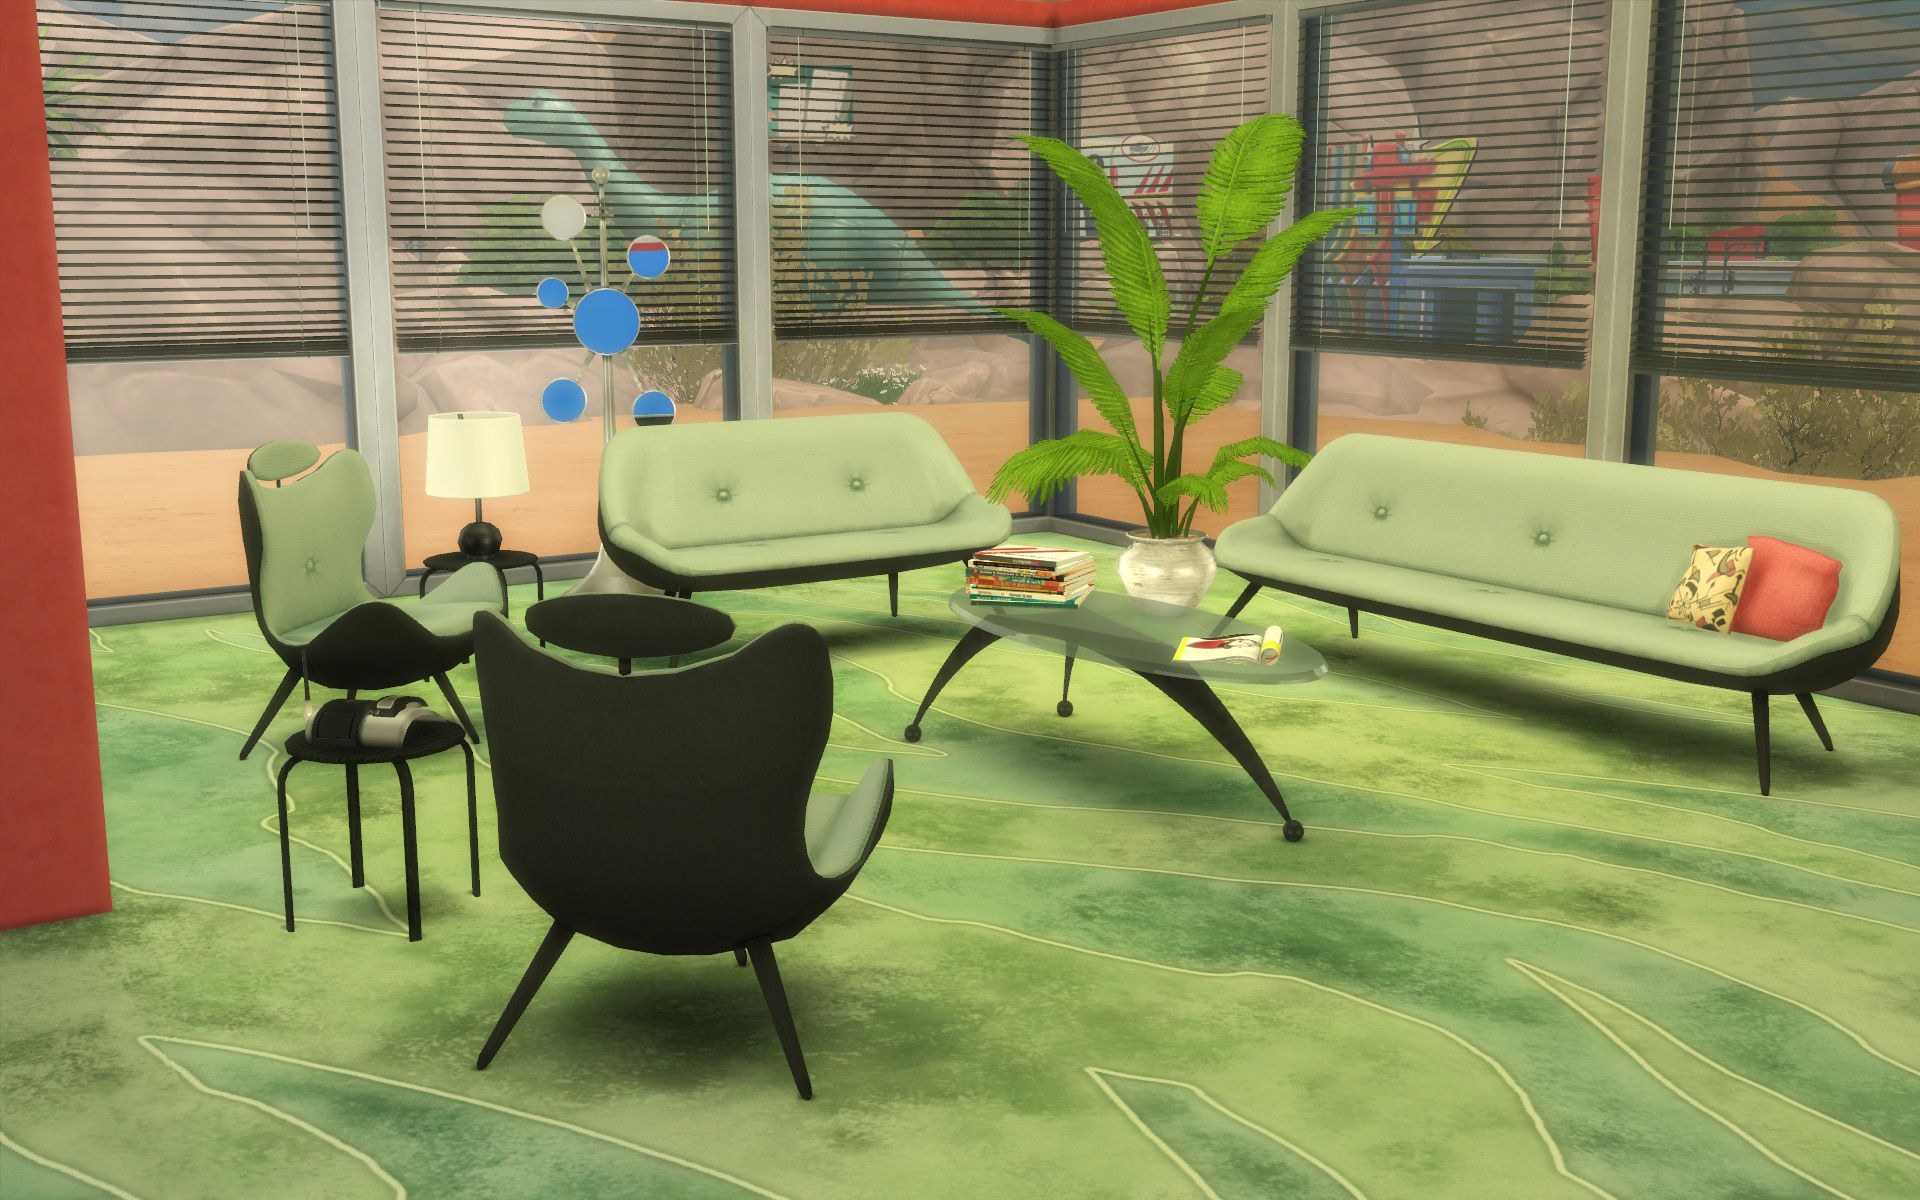 Atomic Living Room Objects From The Sims 2 Pets With A Few Bonus Items